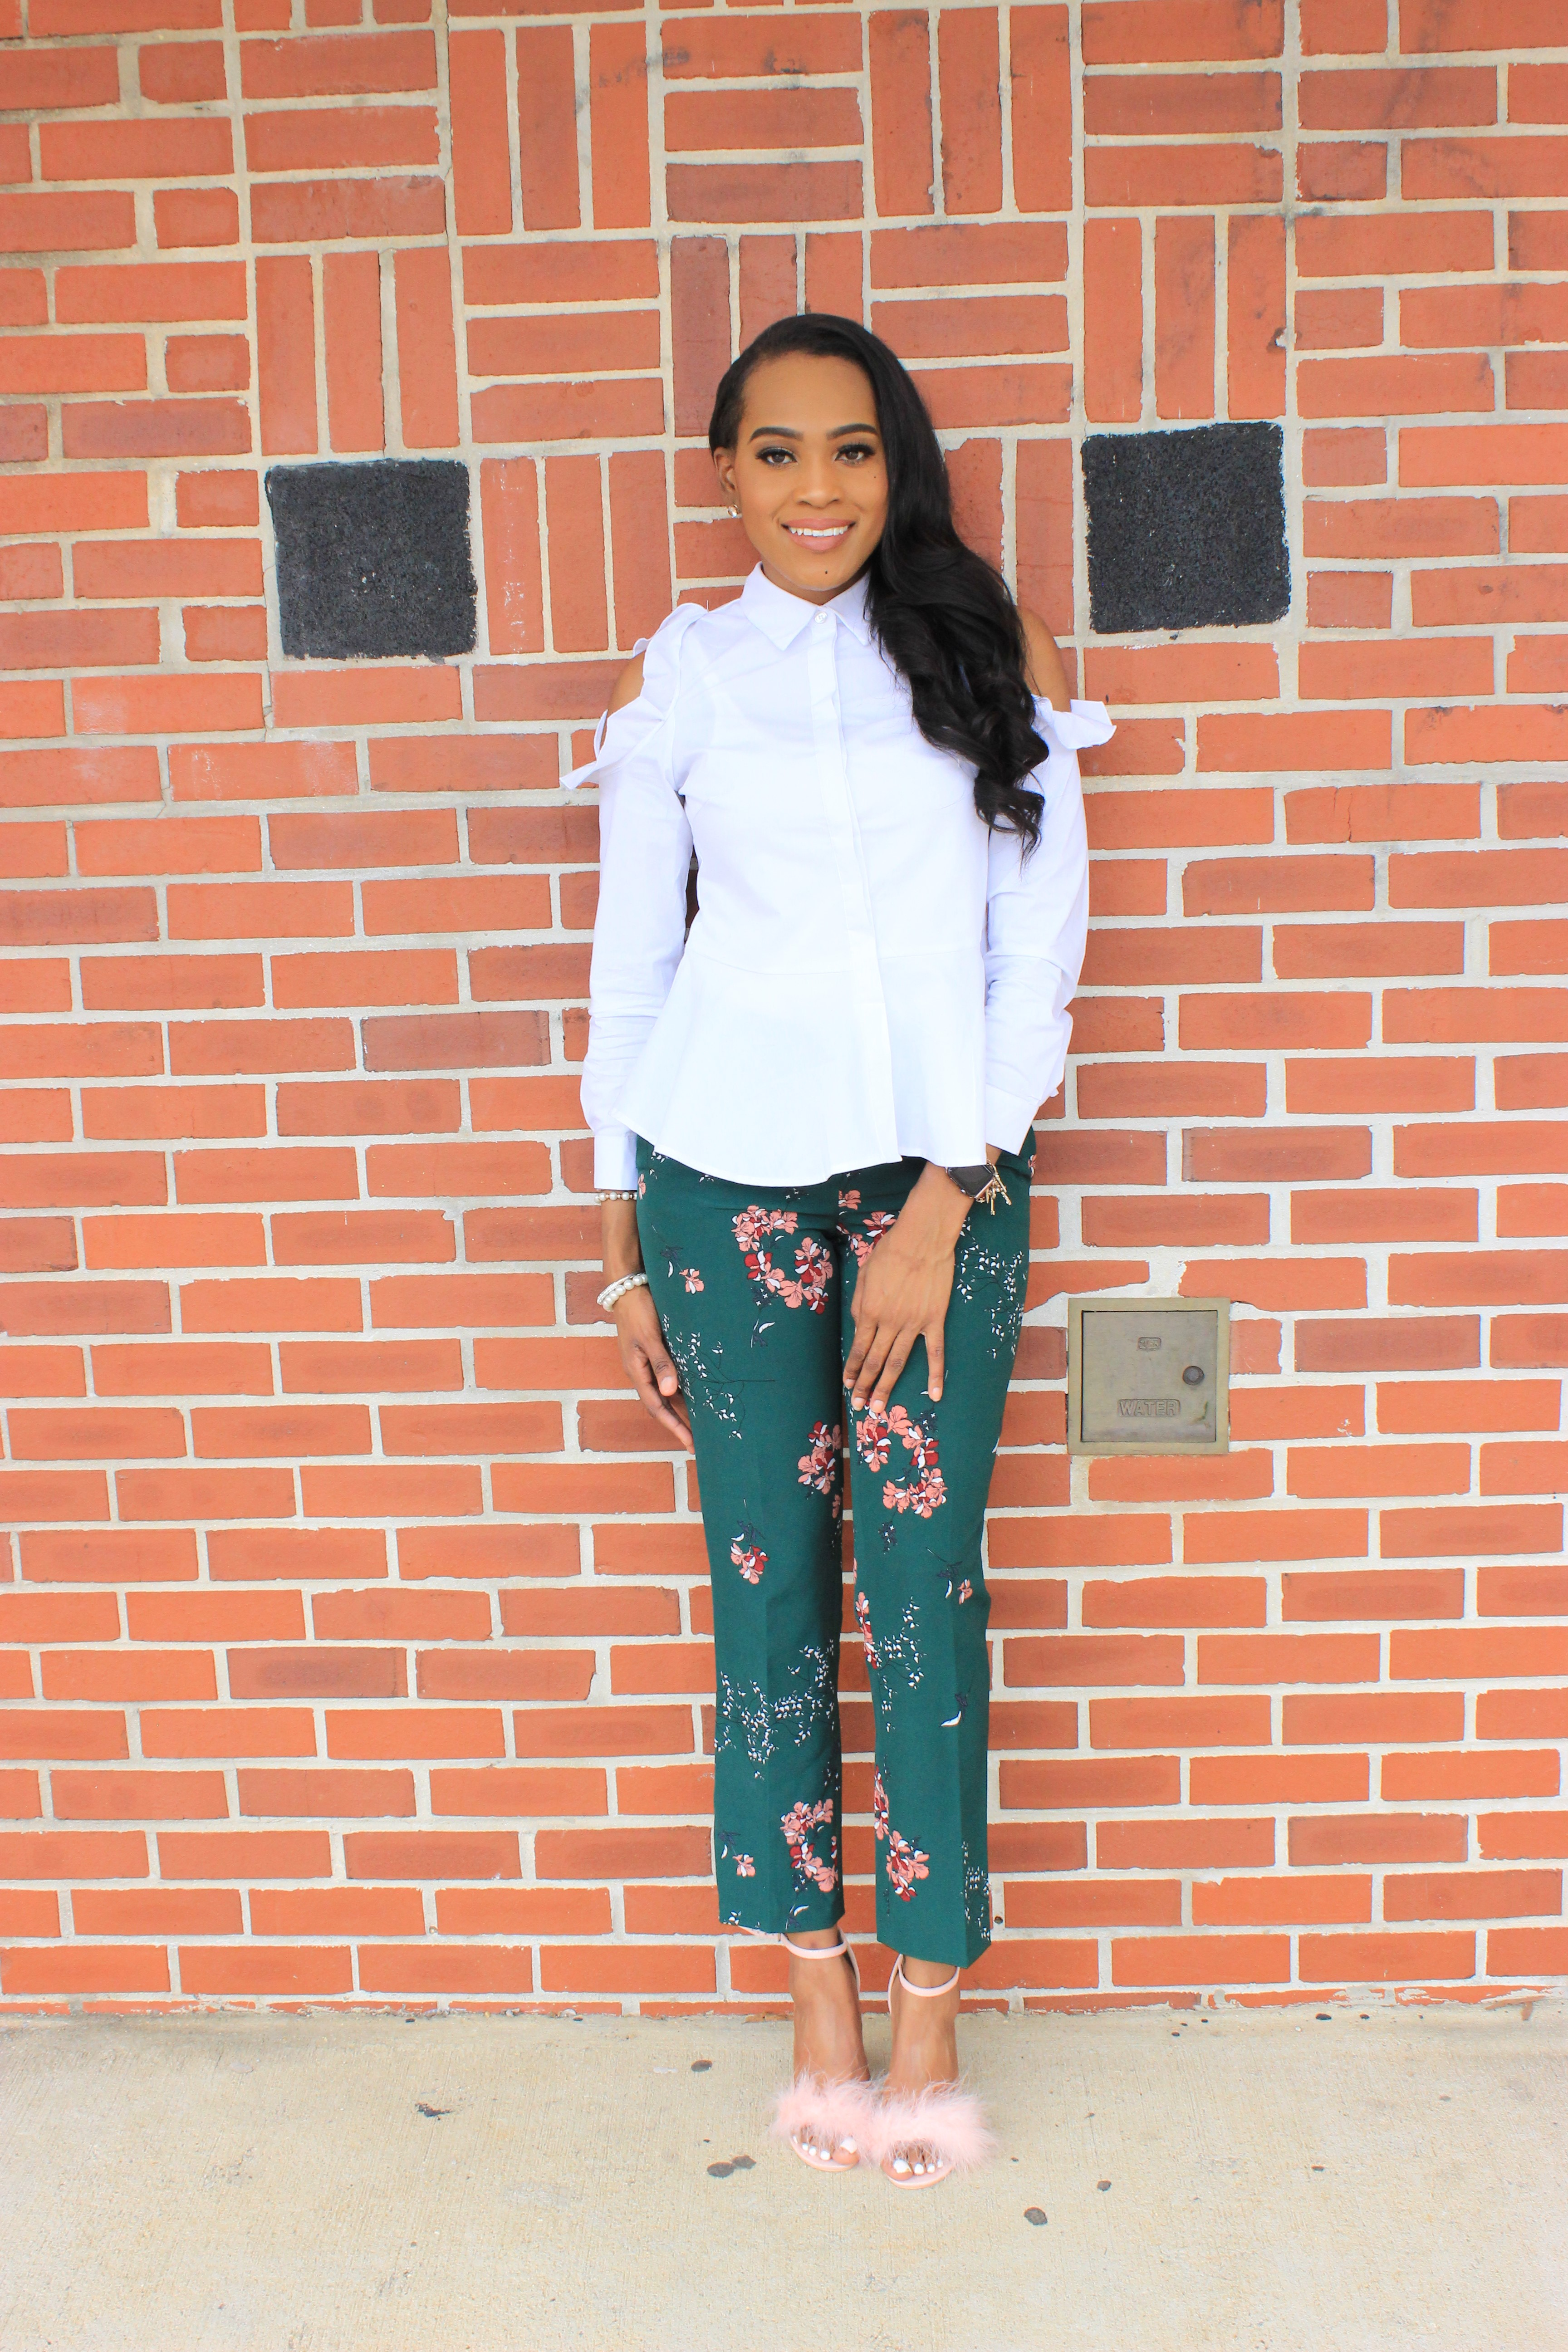 Style-files-Green-floral-printed-ankle-length-carolina-belle-montreal-pants-white-cold-shoulder-ruffle-peplum-blouse-pink-faux-fur-glitter-block-heel-missguided-ankle-strap-sandals-oohlalablog-14